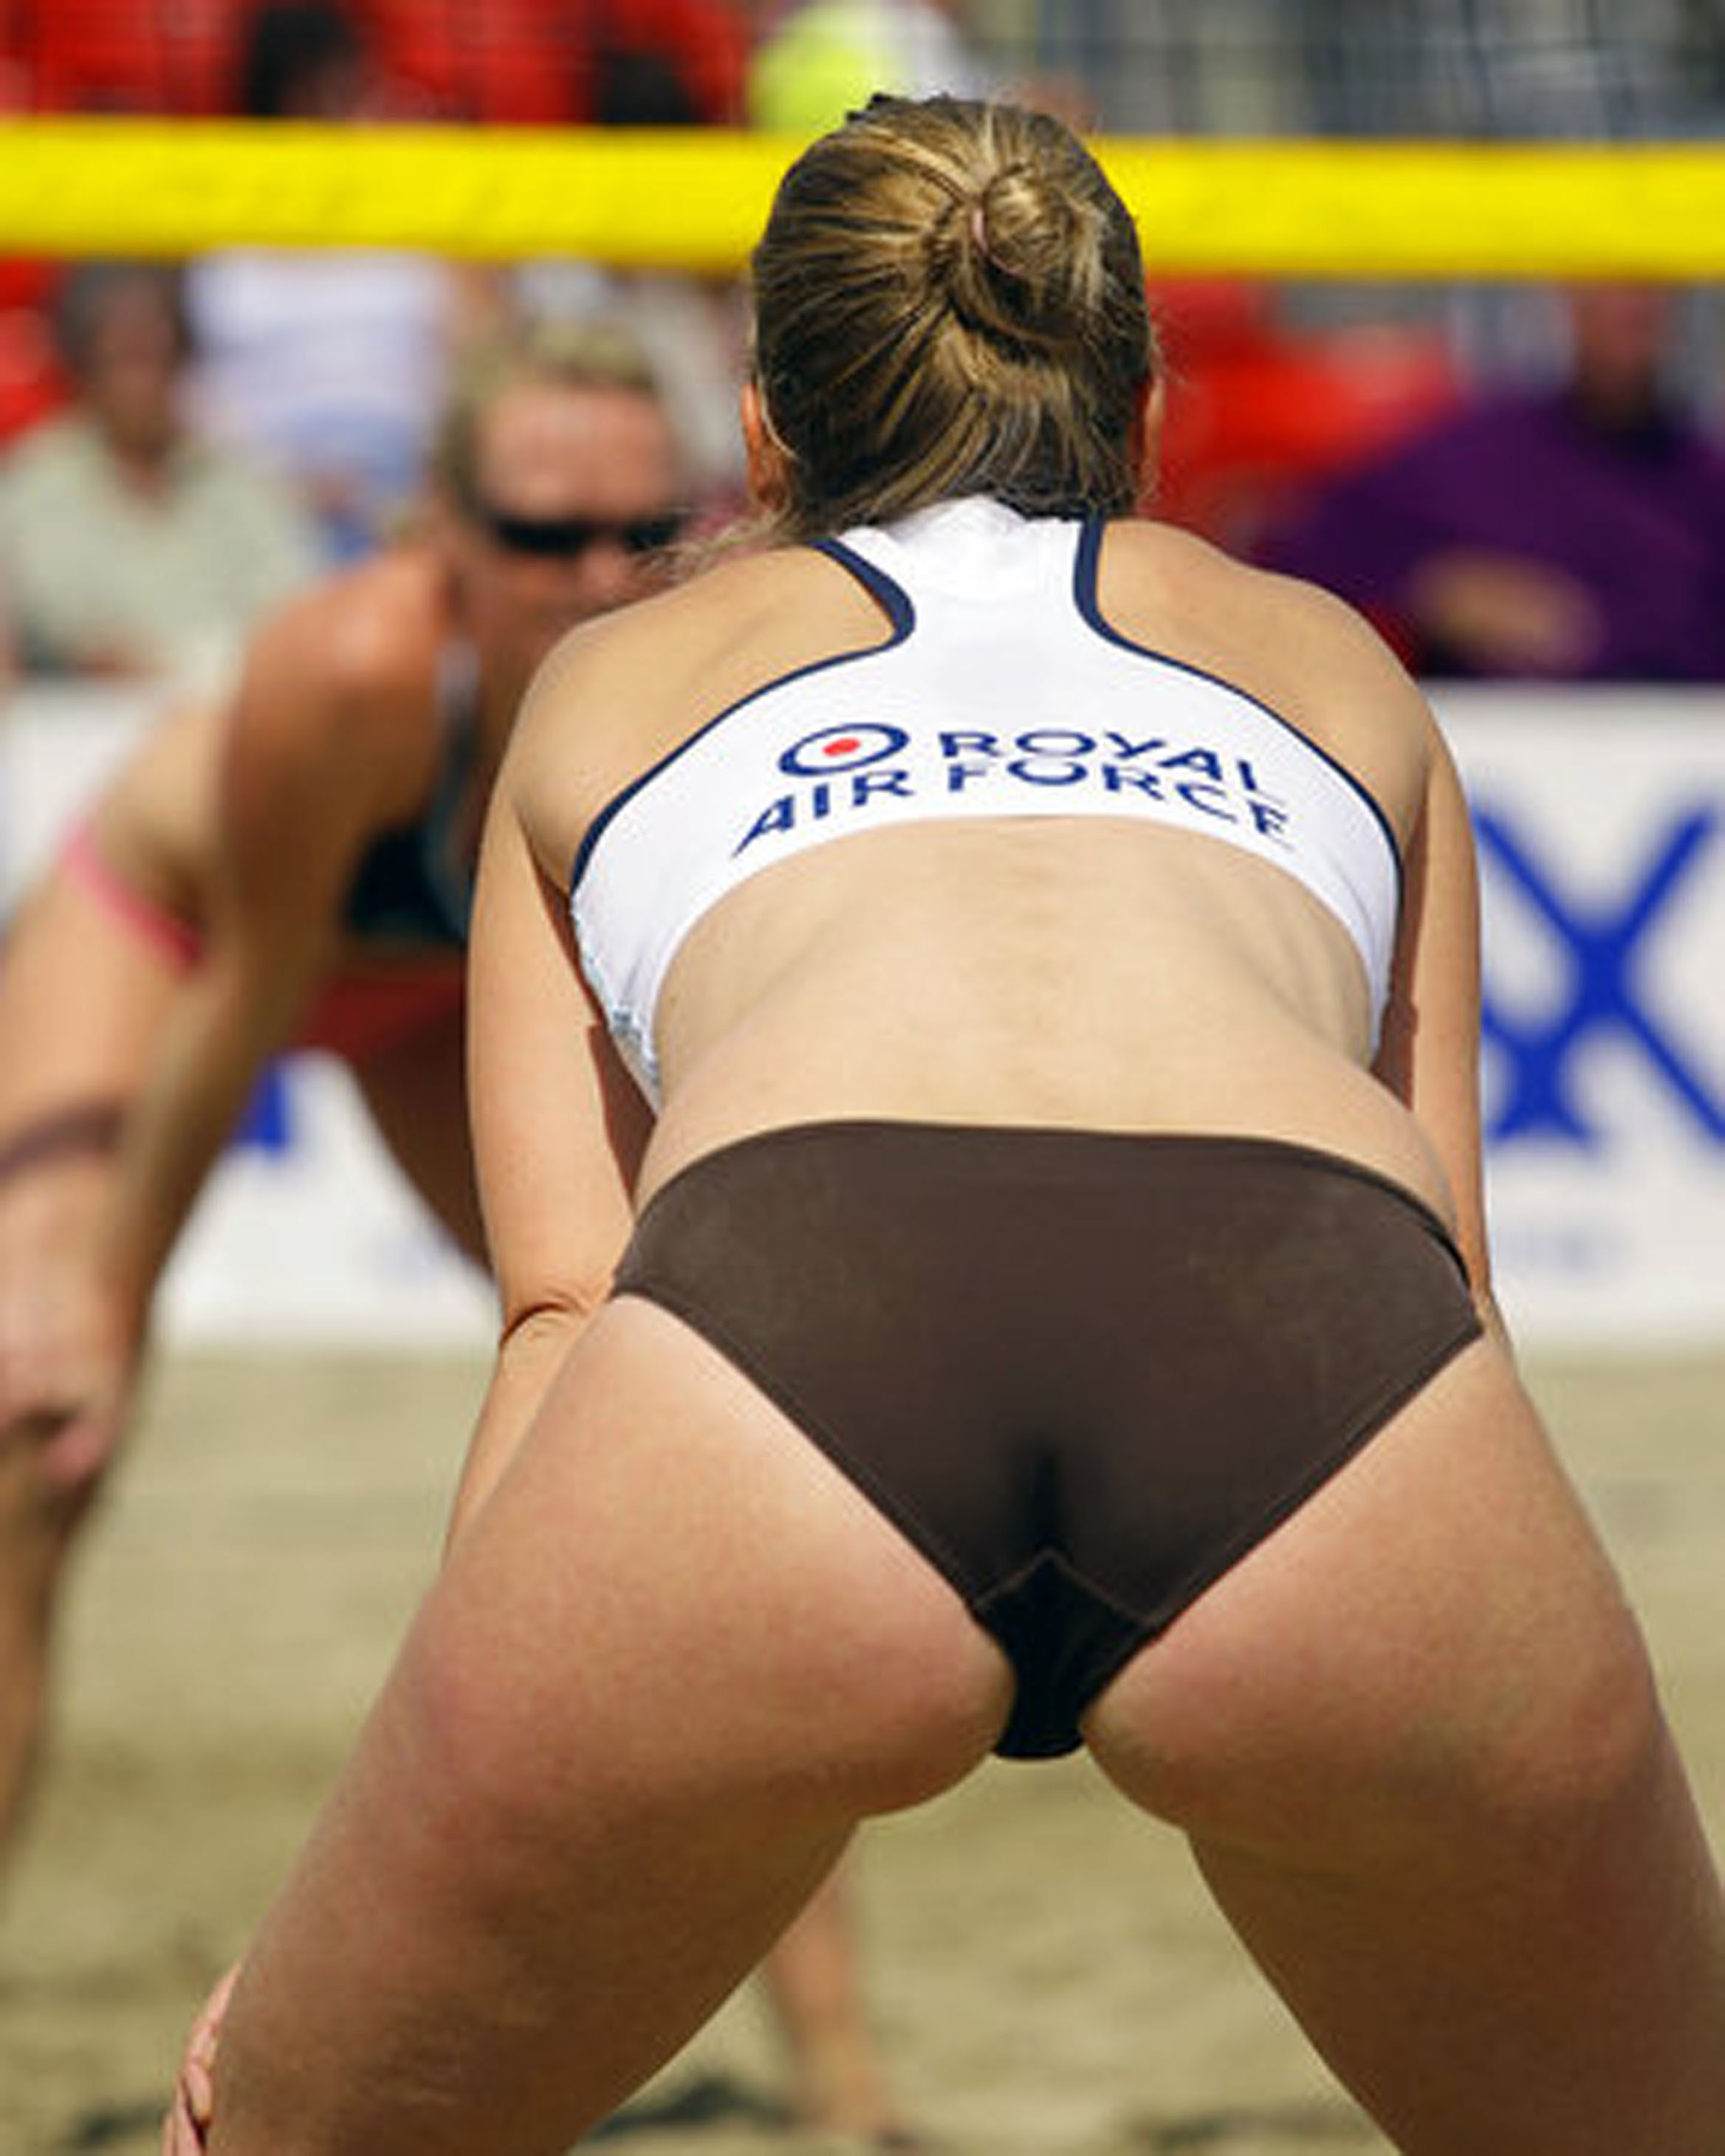 http://upload.wikimedia.org/wikipedia/commons/4/47/Beach_Volleyball_Classic_2007_(1443403841).jpg